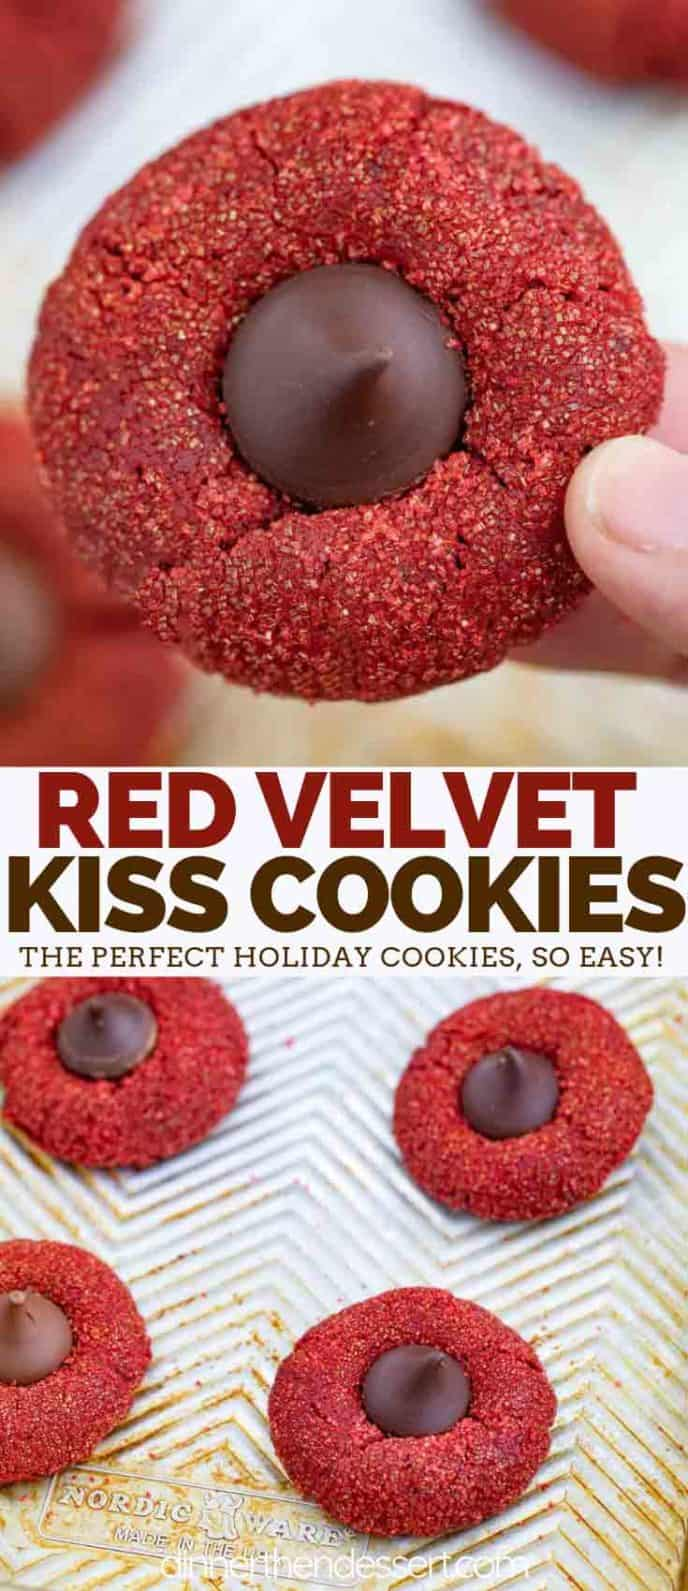 Red Velvet Hershey's Kiss Cookies Collage